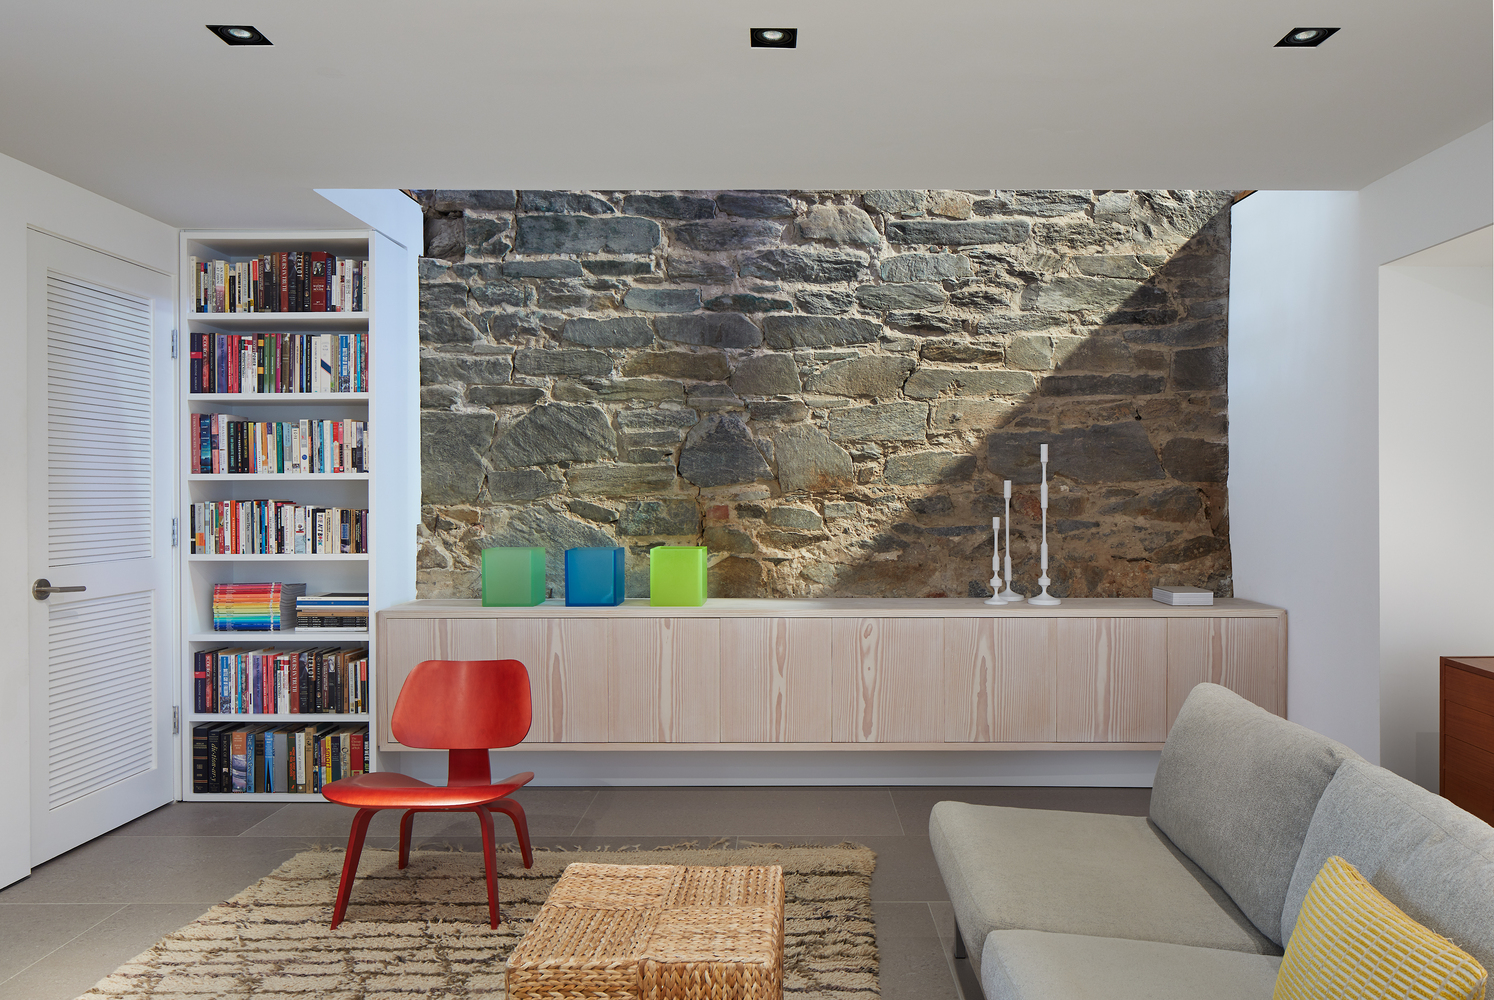 Exposed stone is used as an accent material throughout the house